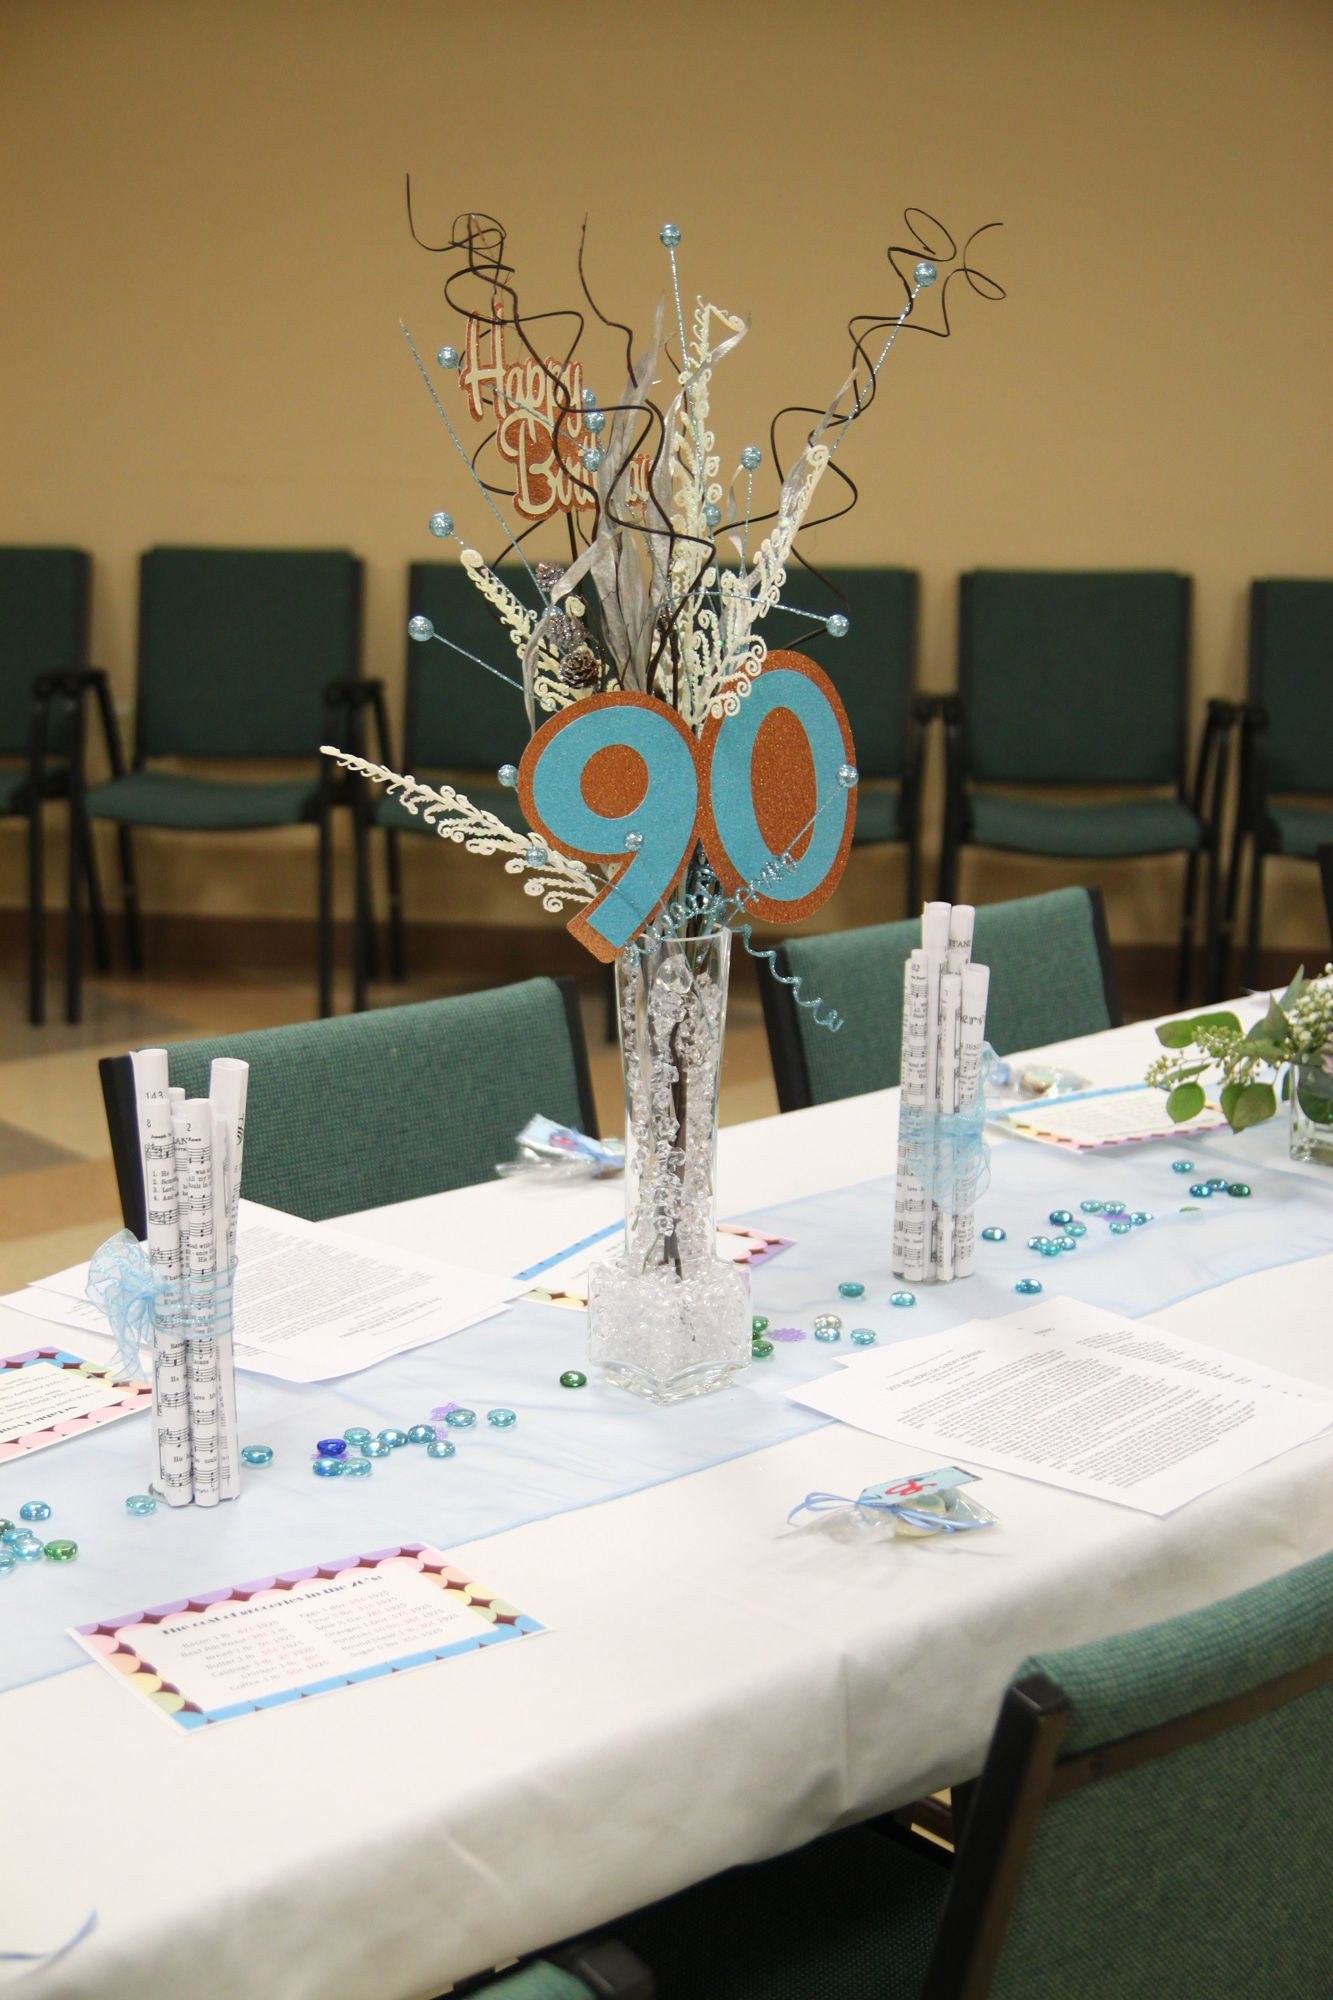 Best ideas about 90th Birthday Party Ideas Decorations . Save or Pin Centerpieces for Mom s 90th birthday Now.